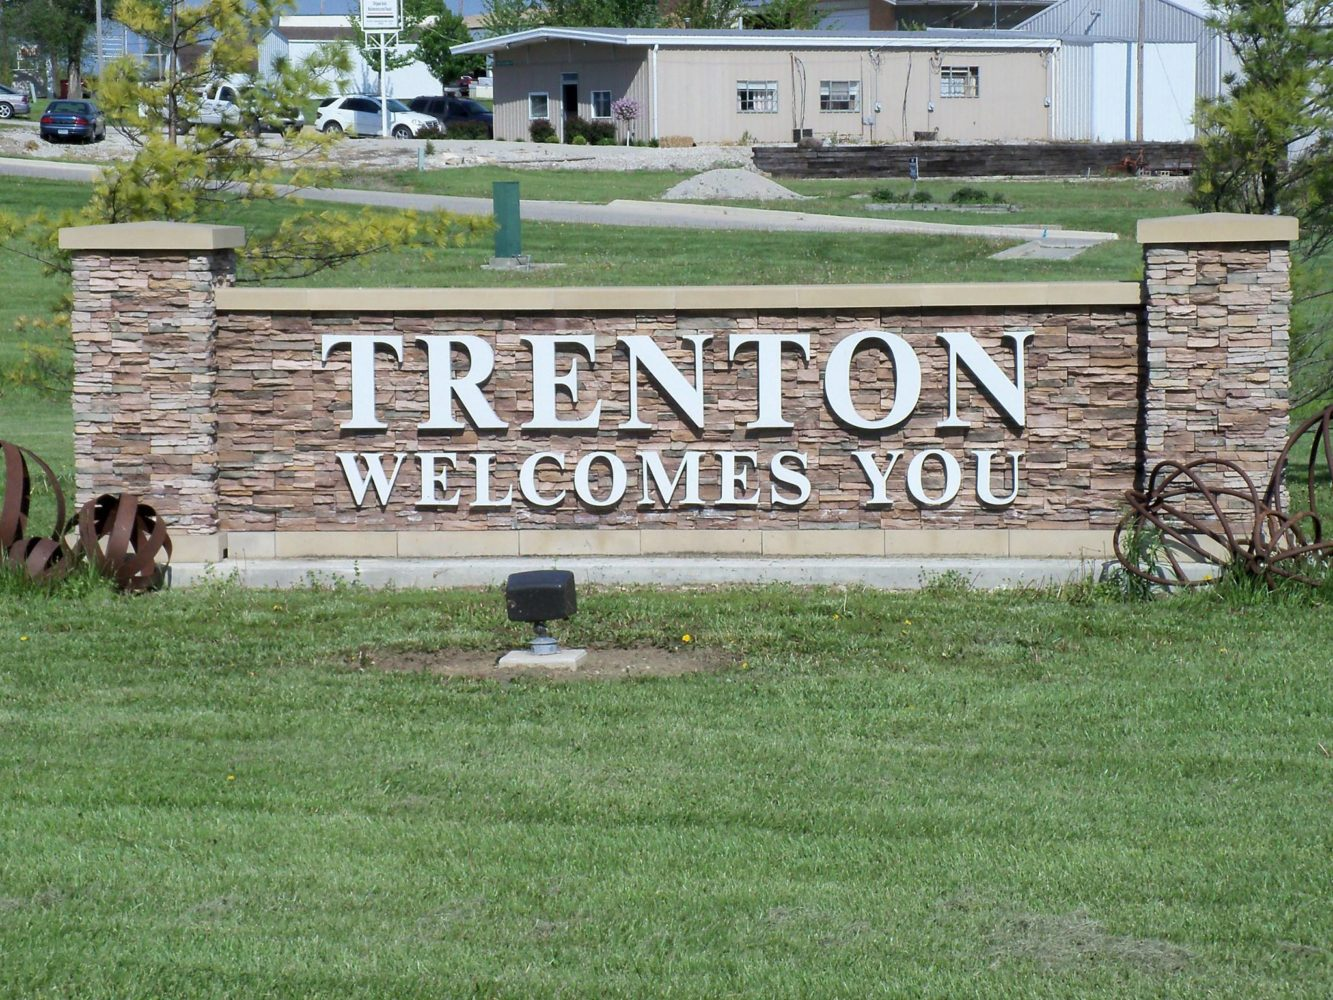 Full agenda expected at Trenton City Council meeting Monday evening